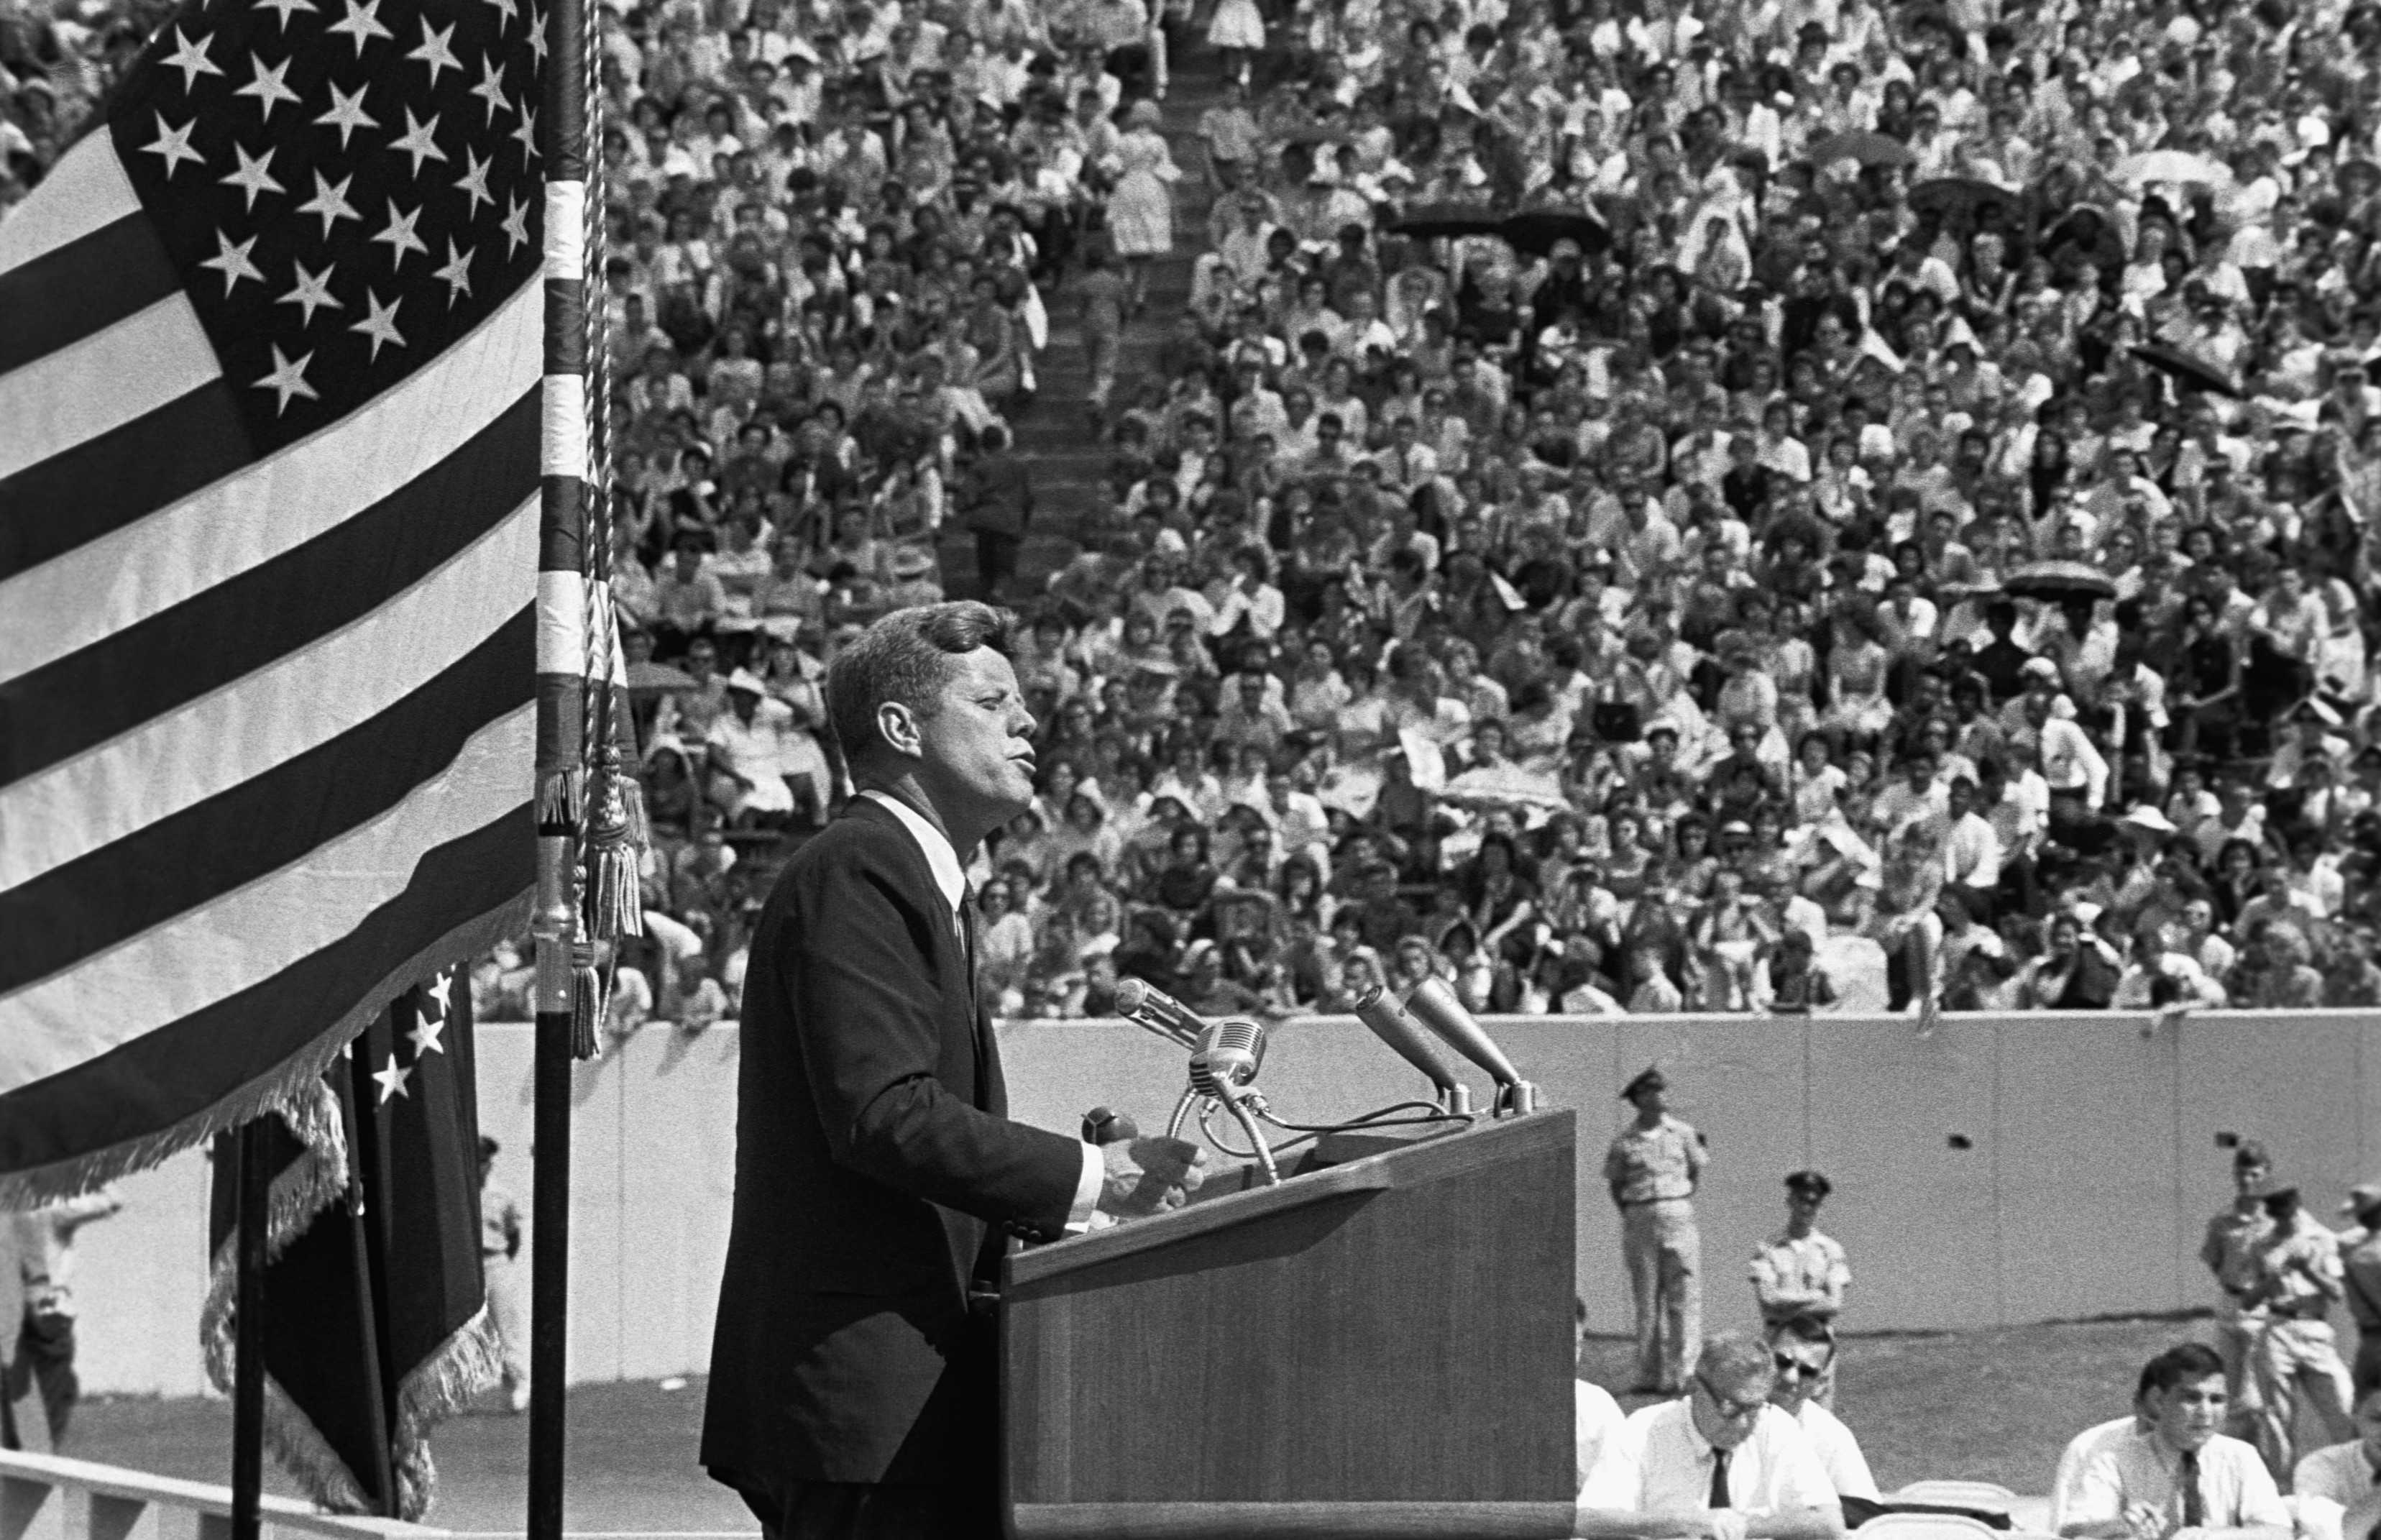 Kennedy historic speech in Houston | history.com